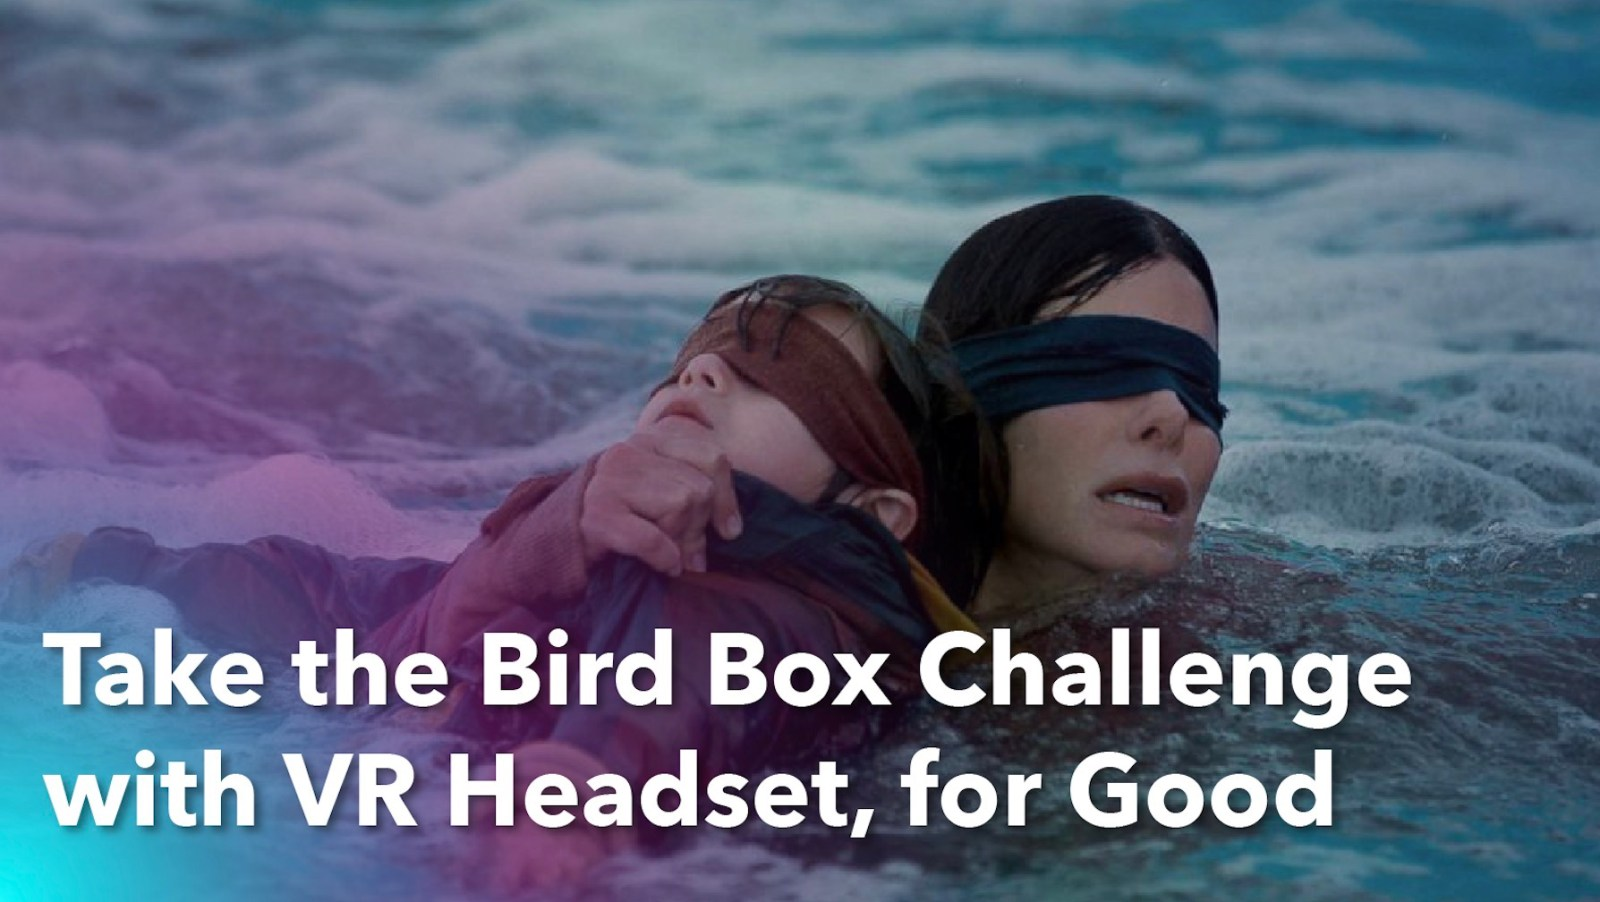 Take the Bird Box Challenge with VR Headset, for Good